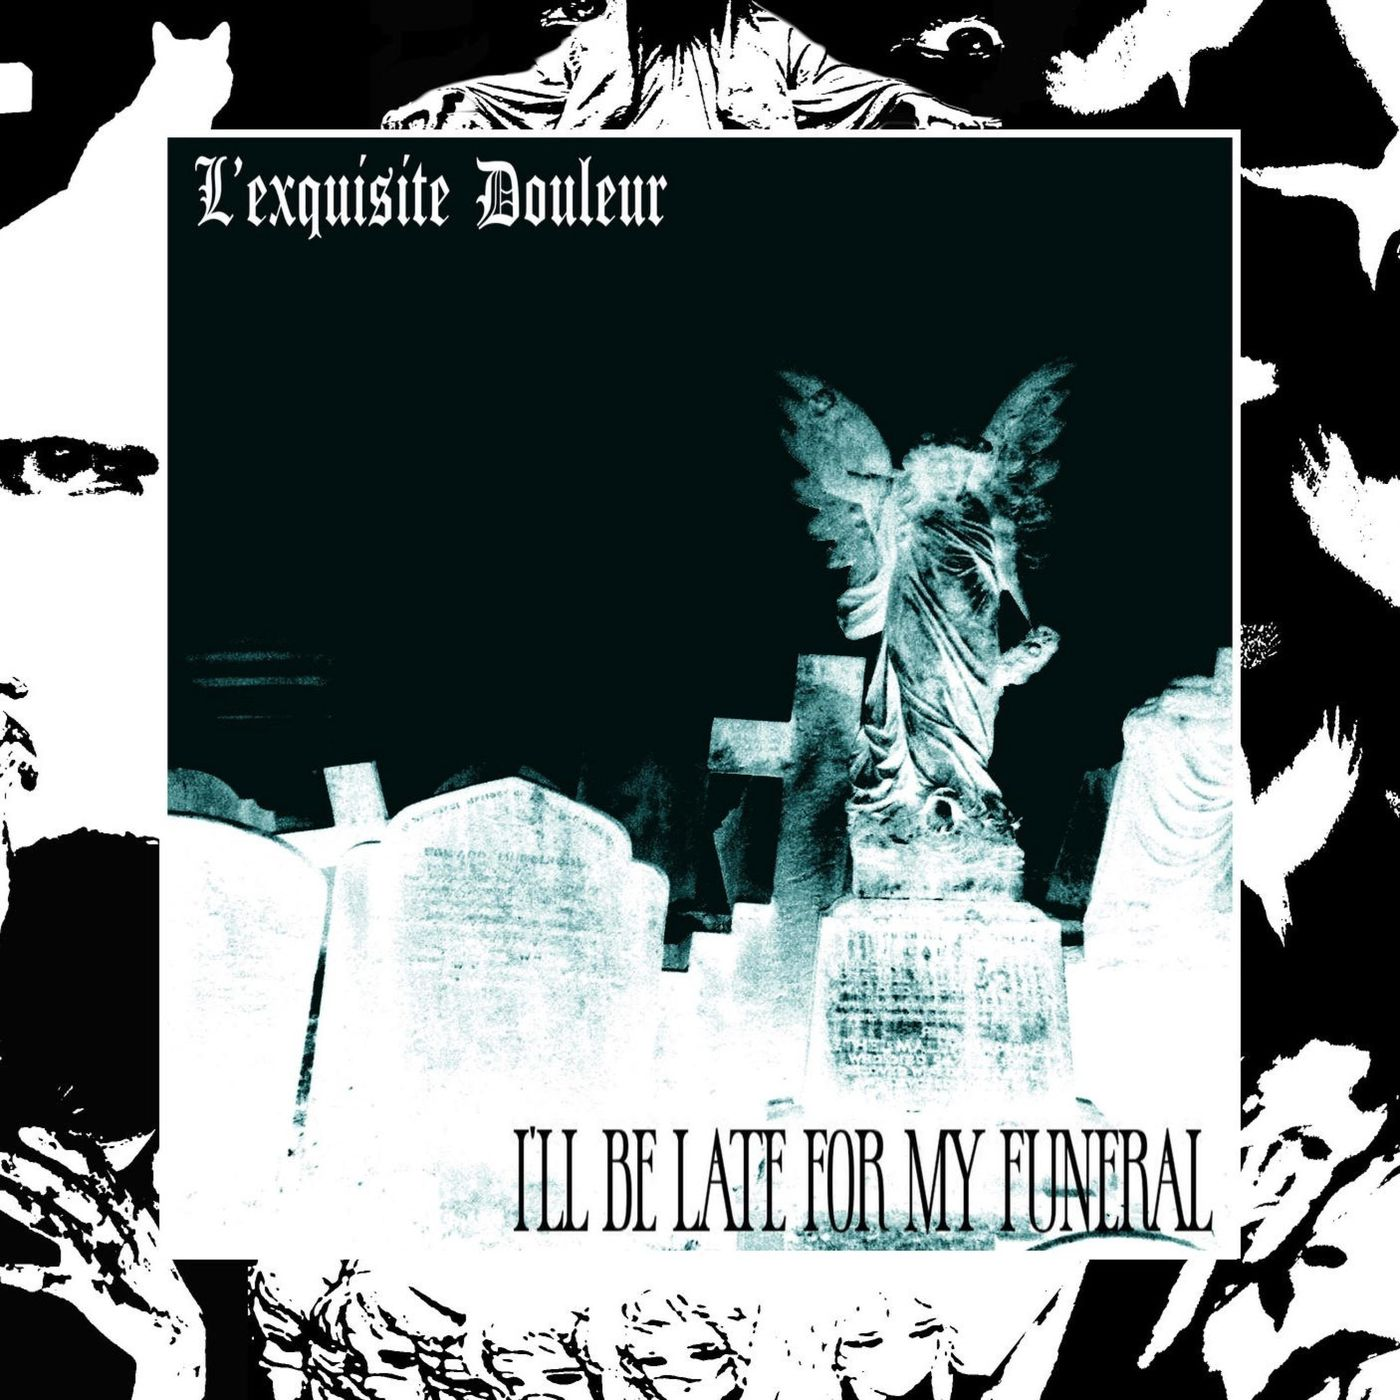 L'exquisite Douleur - I'll Be Late For My Funeral [single] (2021)